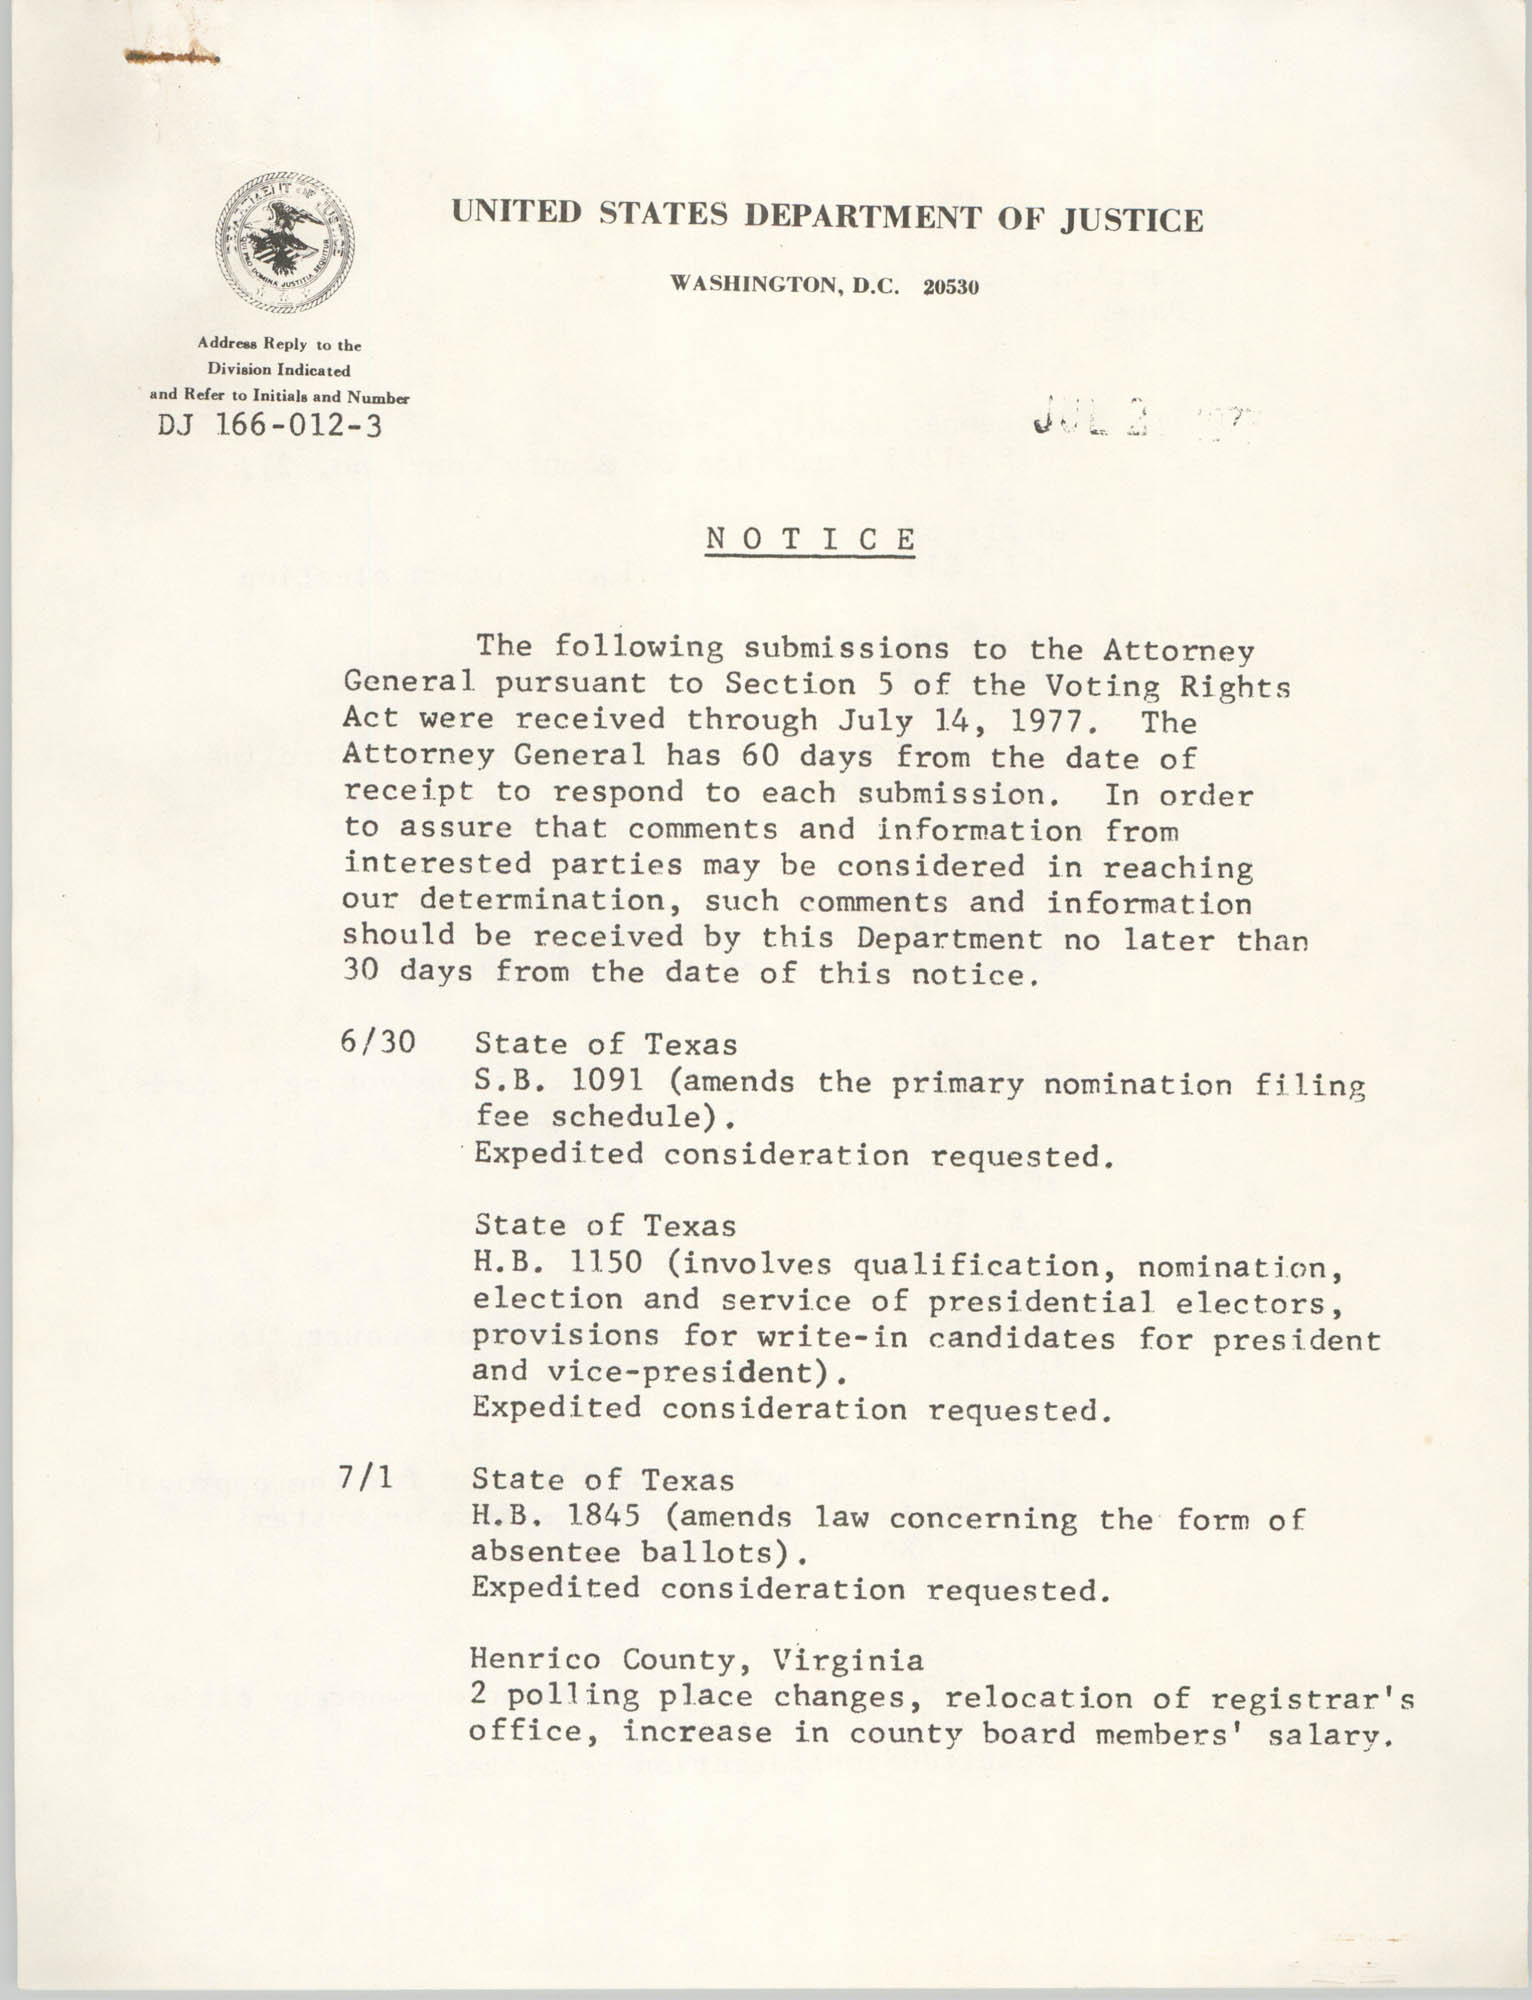 United States Department of Justice Notice, July 14, 1977